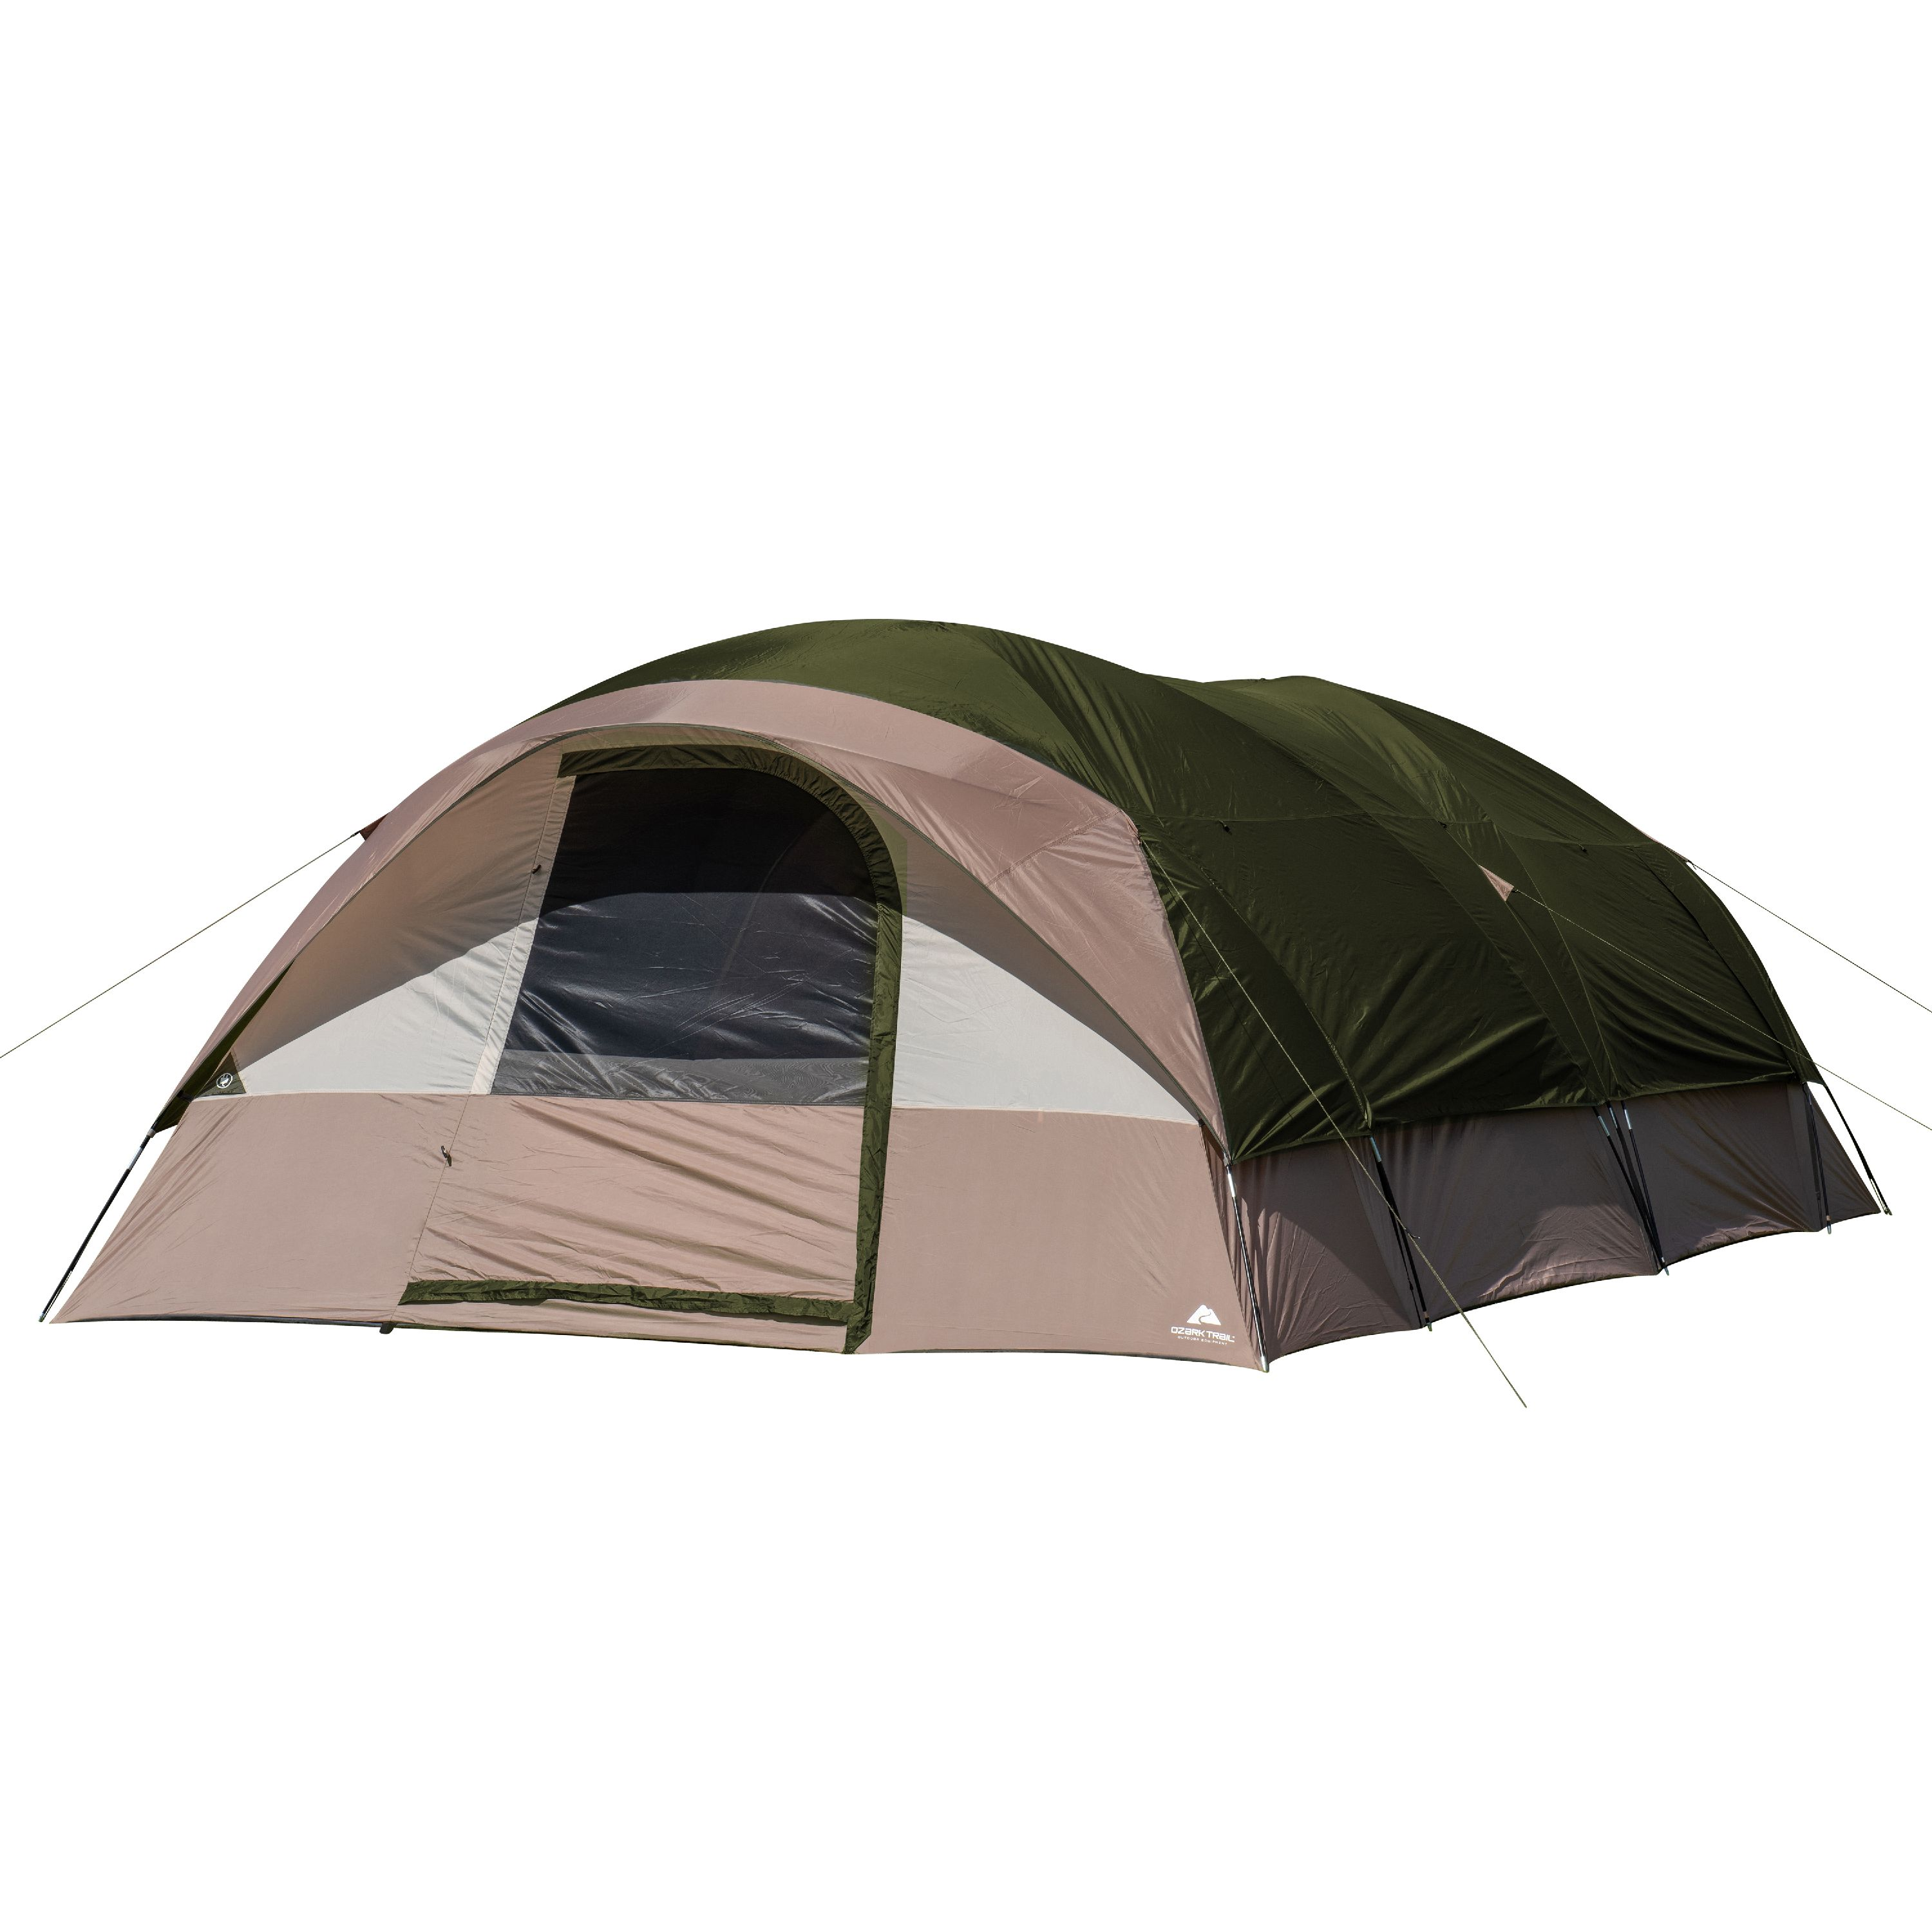 ozark trail 5 person tent instructions